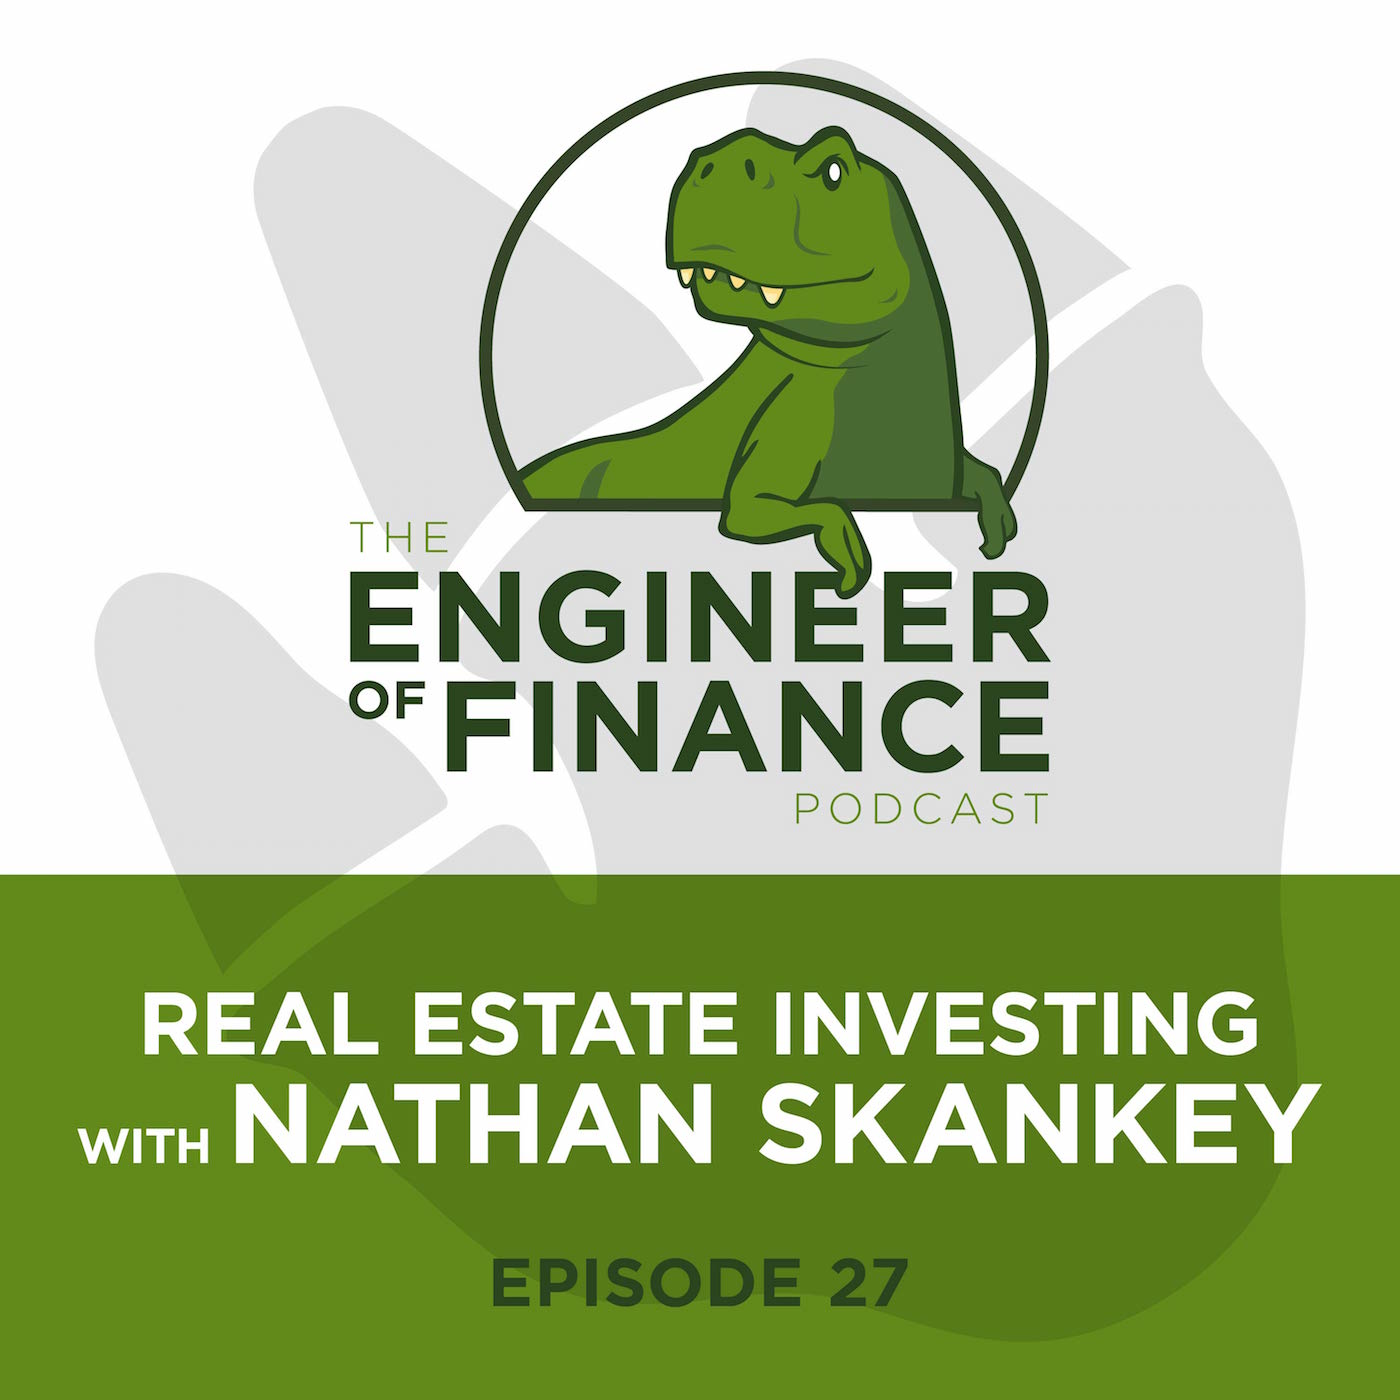 Real Estate Investing with Nathan Skankey – Episode 27